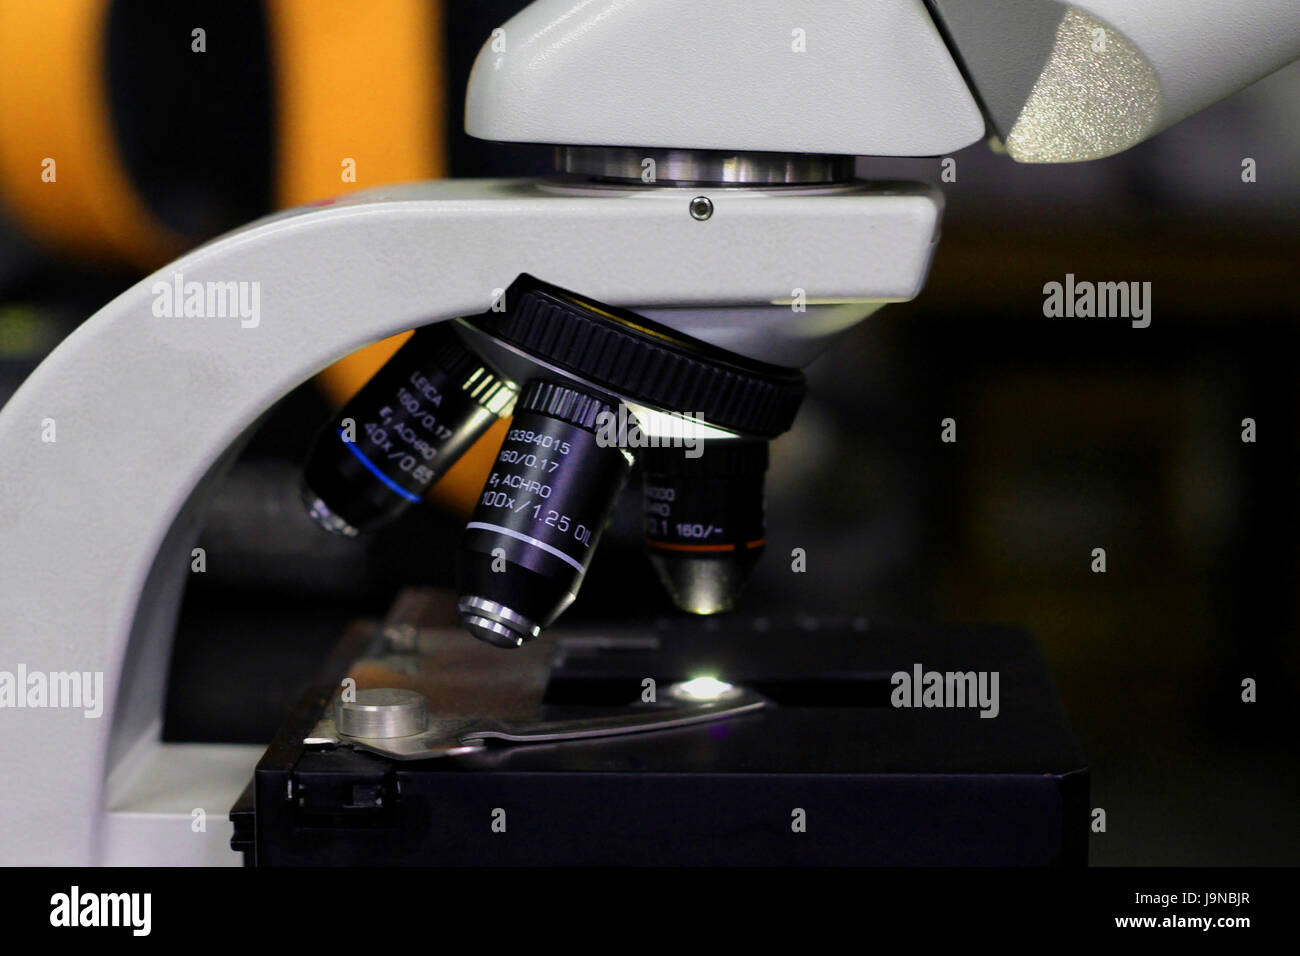 side view of microscope in a research lab showing the objective lenses. Stock Photo